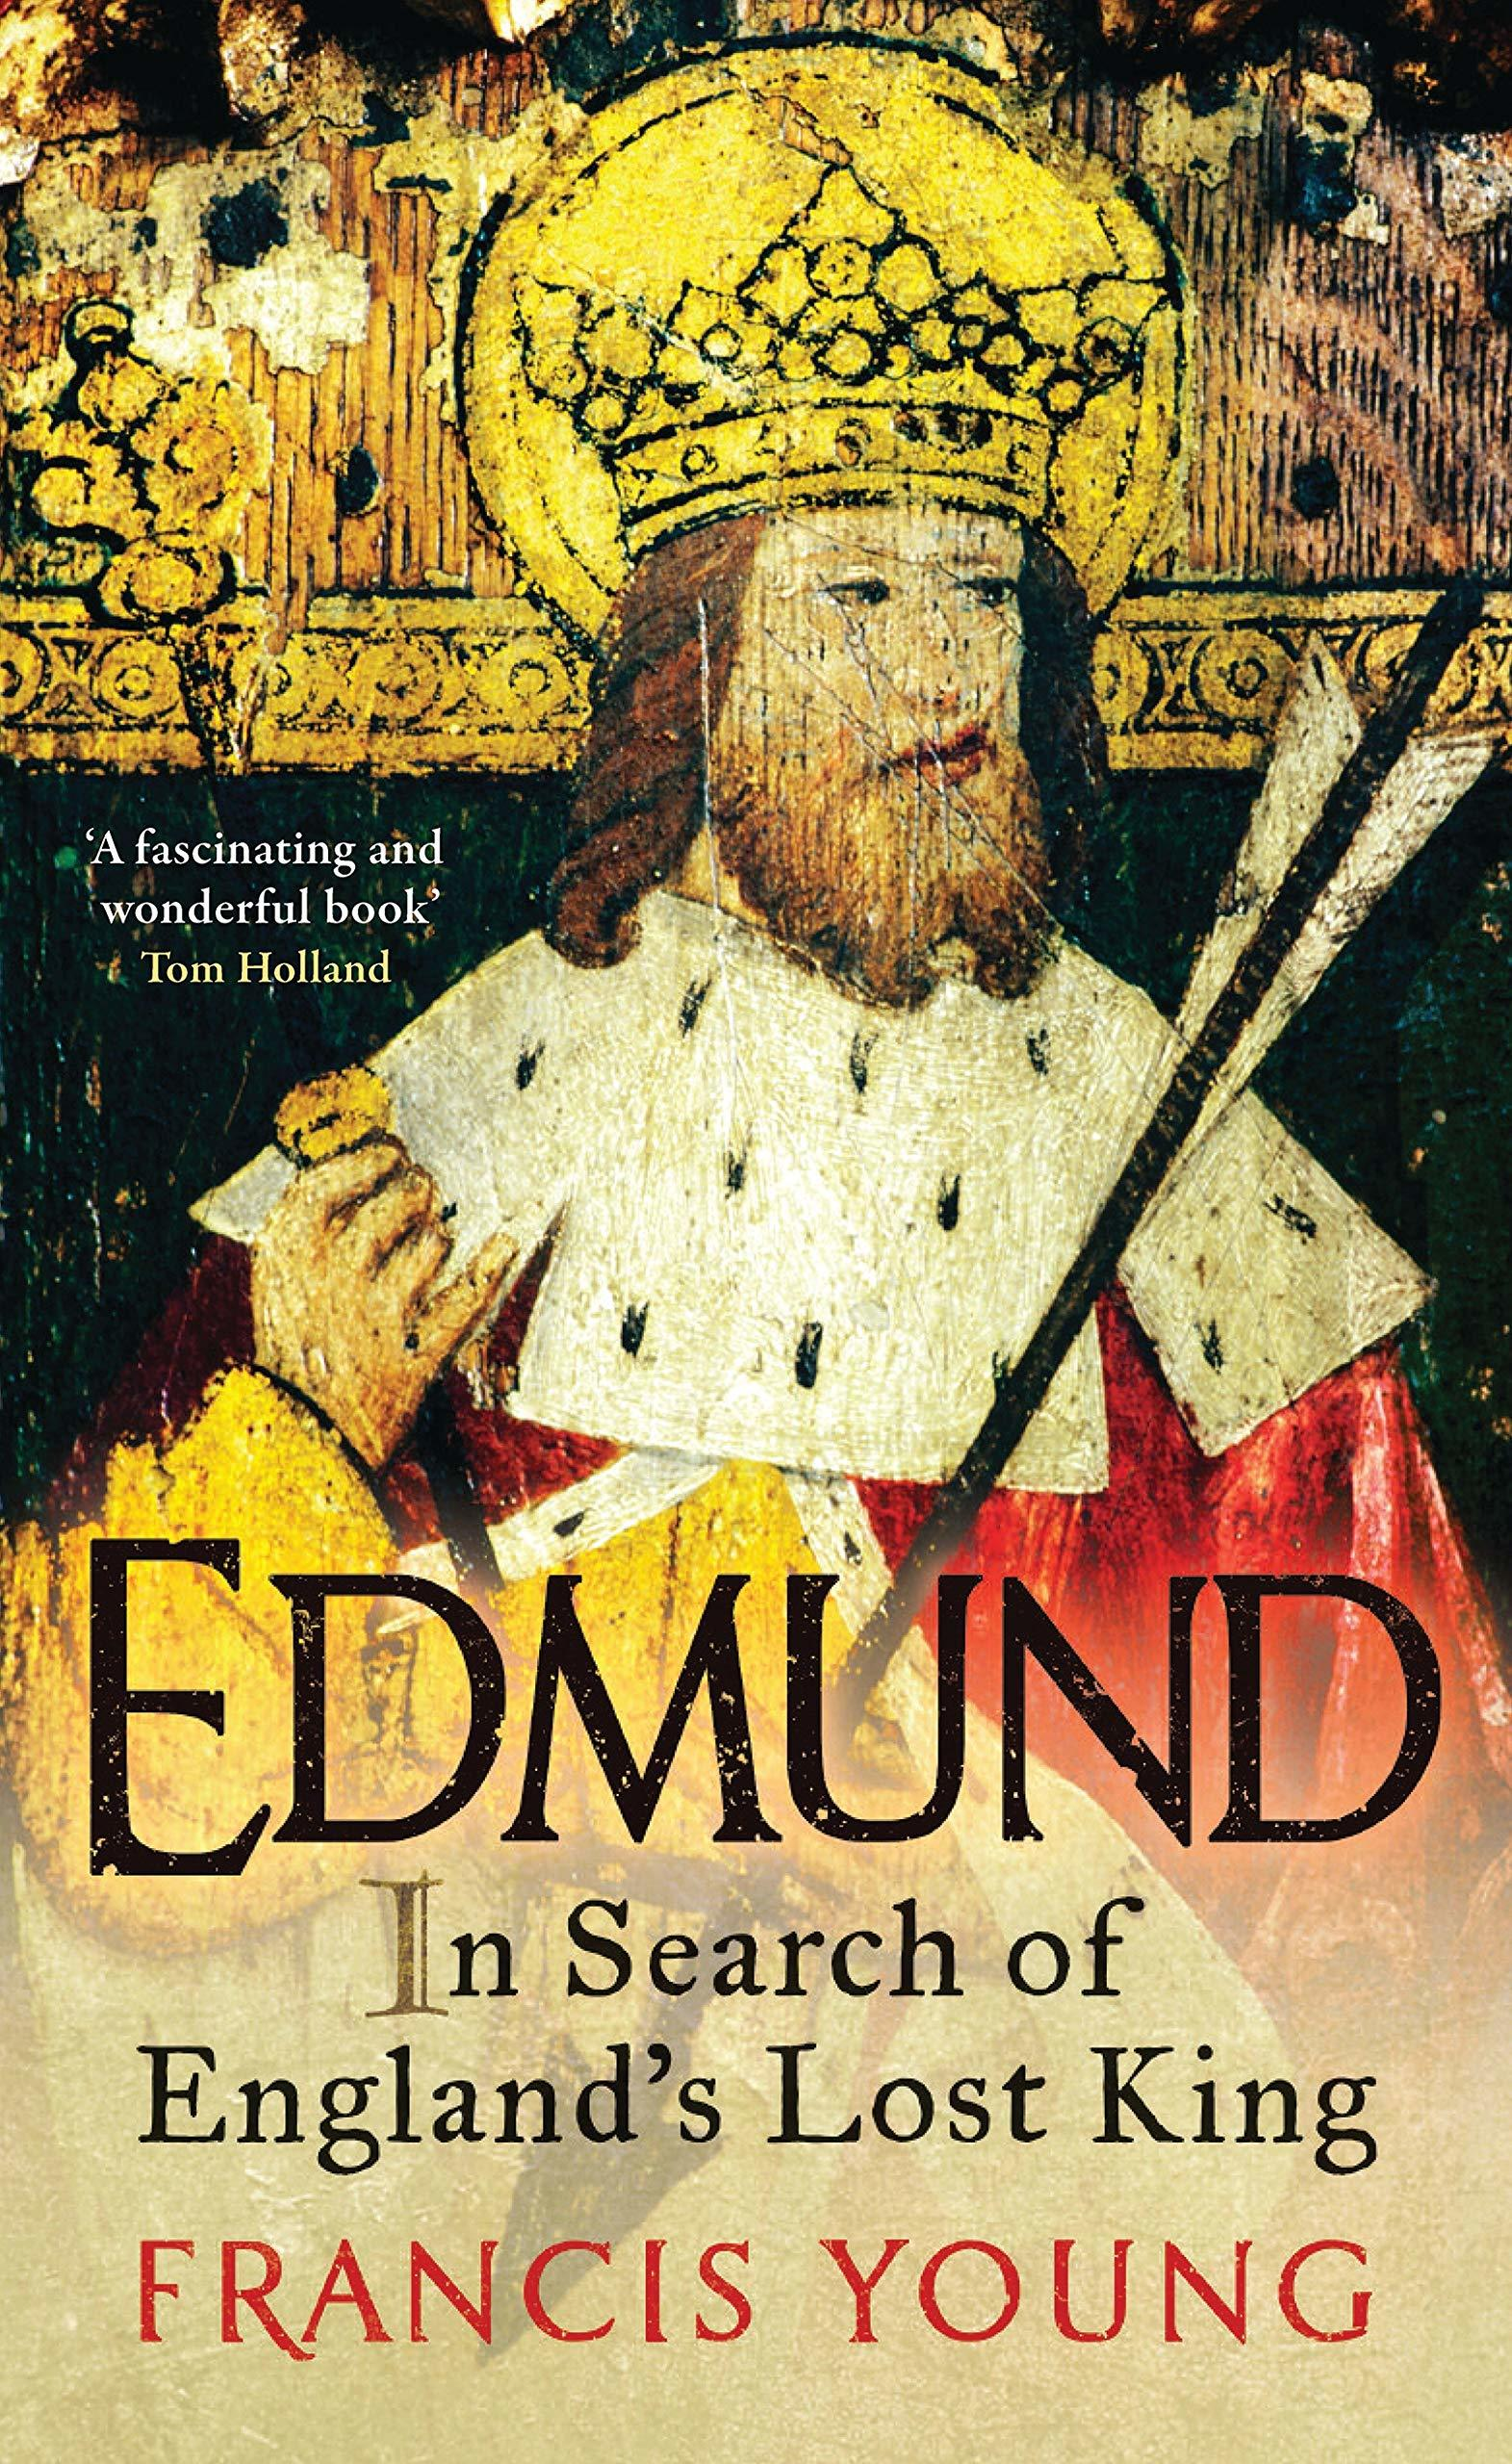 10 Books About Bury St Edmunds that Everyone Should Read